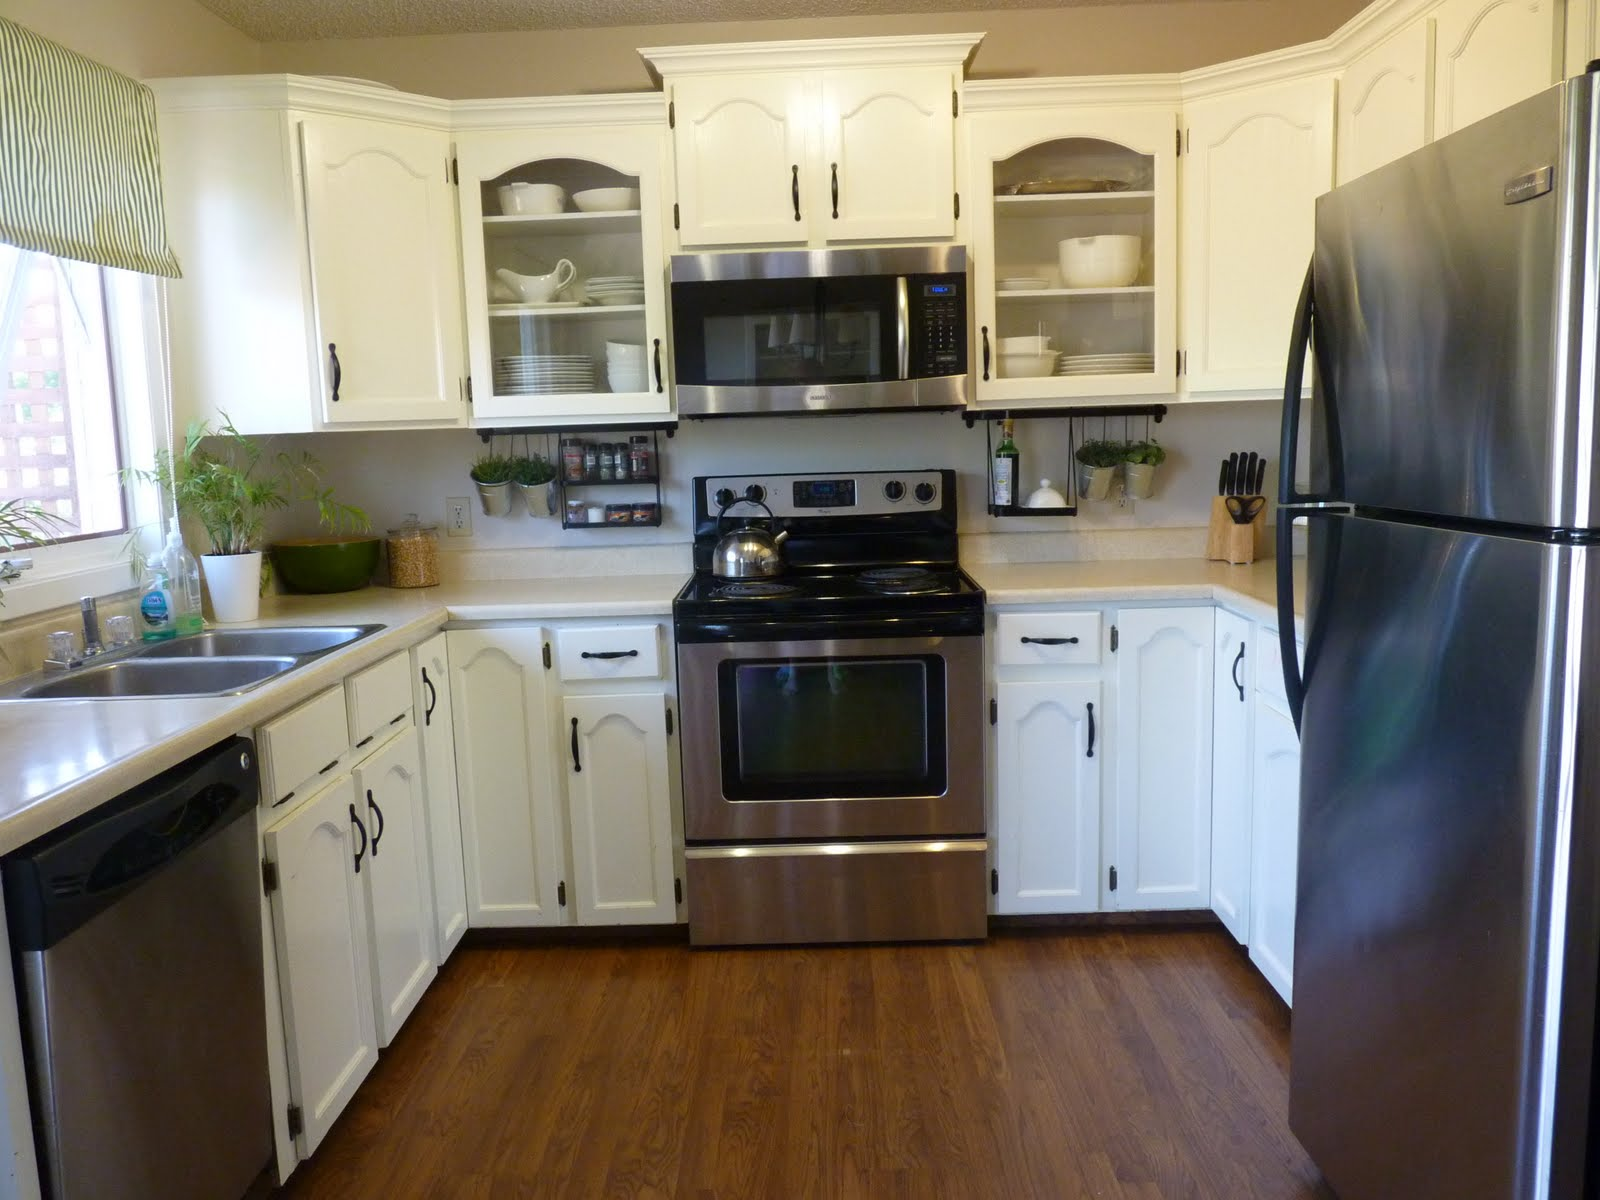 D i y d e s i g n low budget kitchen renovation for Budget kitchen cabinets